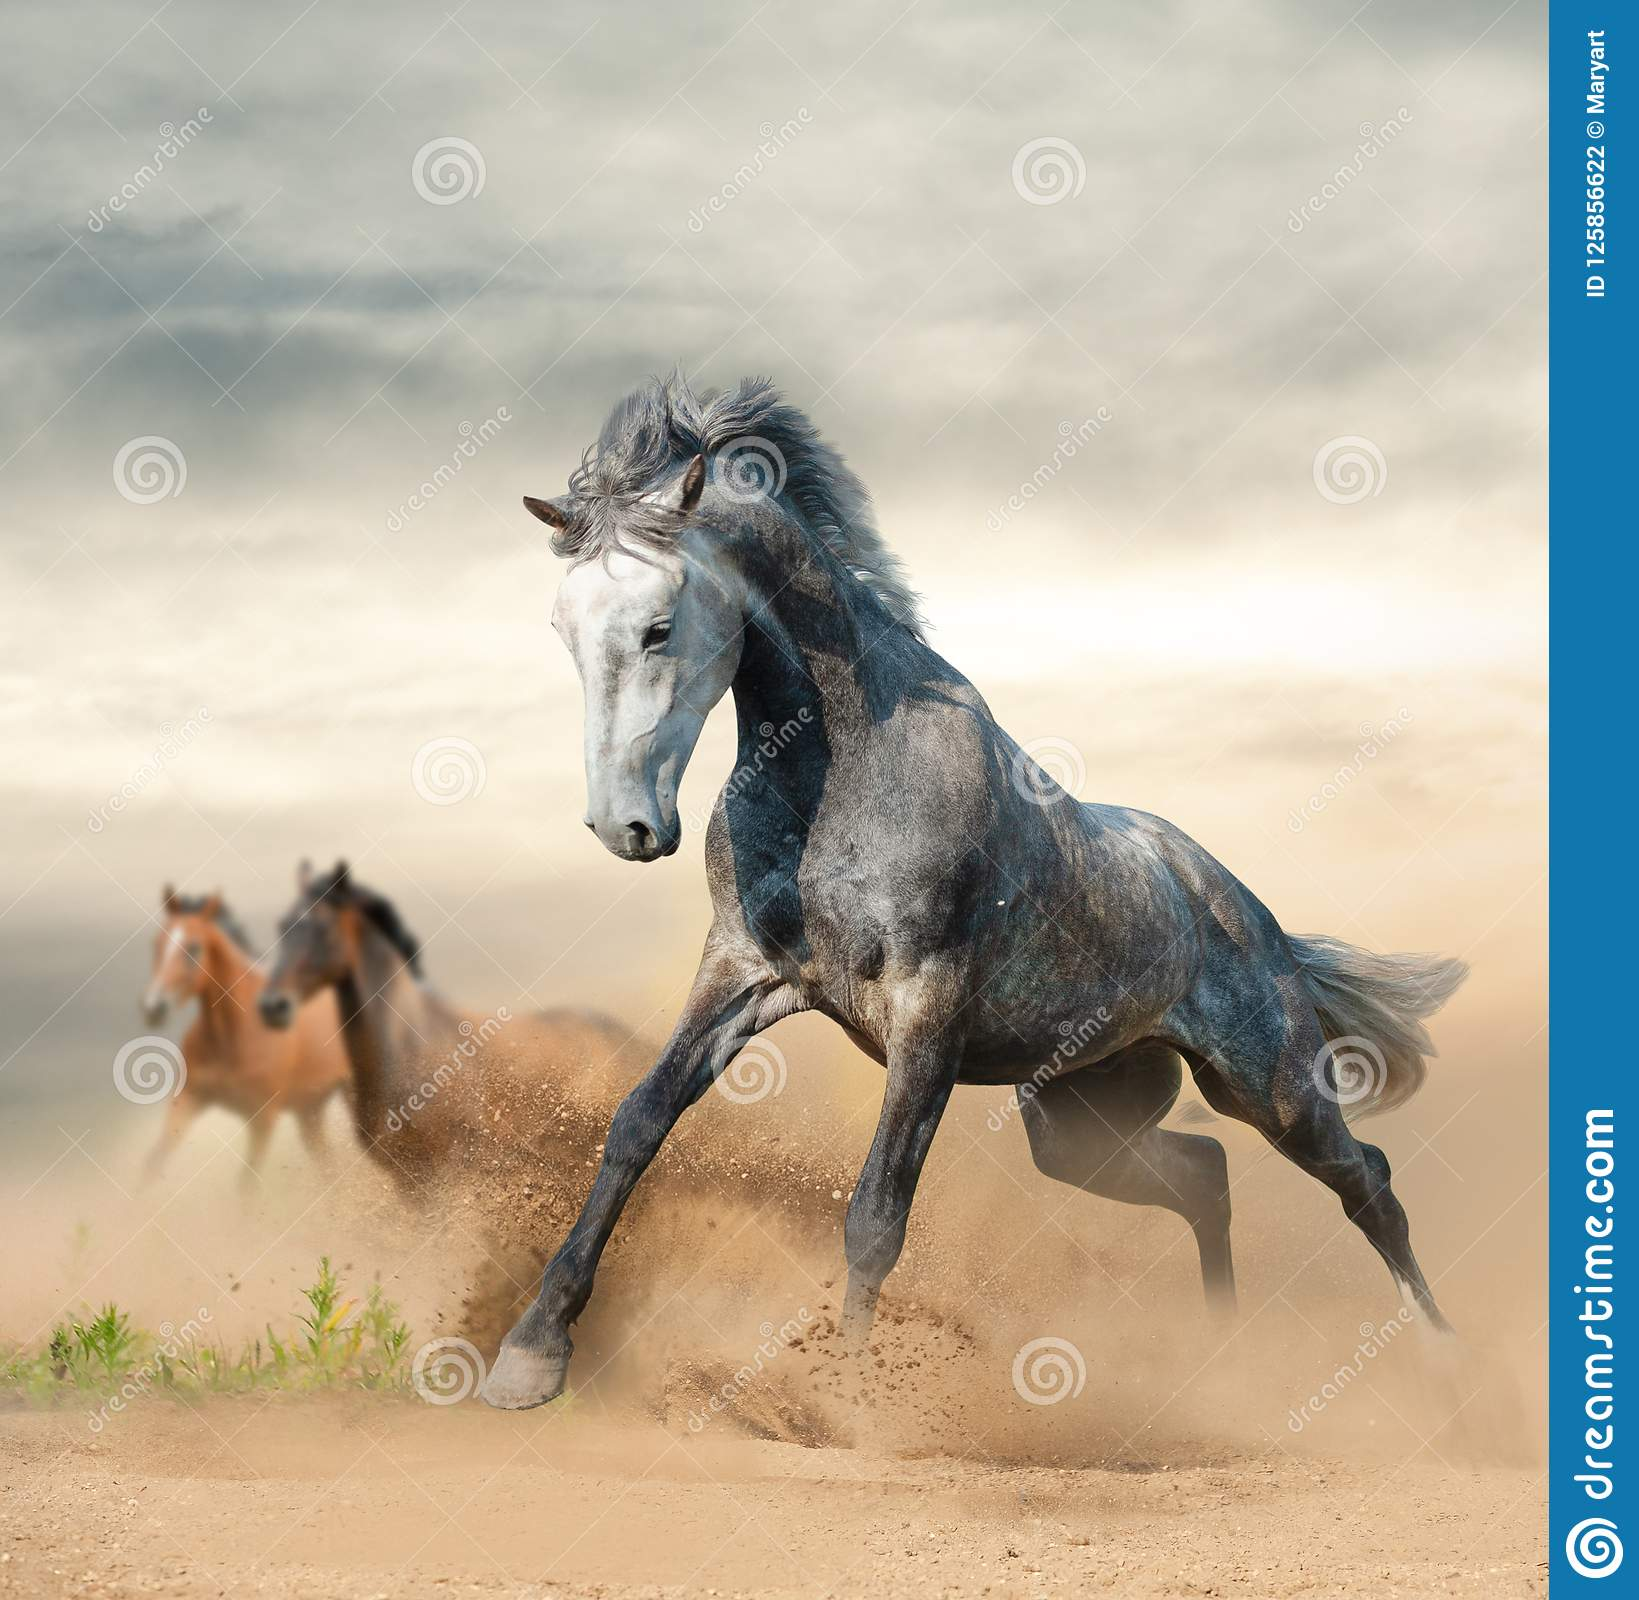 Beautiful Wild Horses On Freedom Stock Photo Image Of Equestrian Moving 125856622